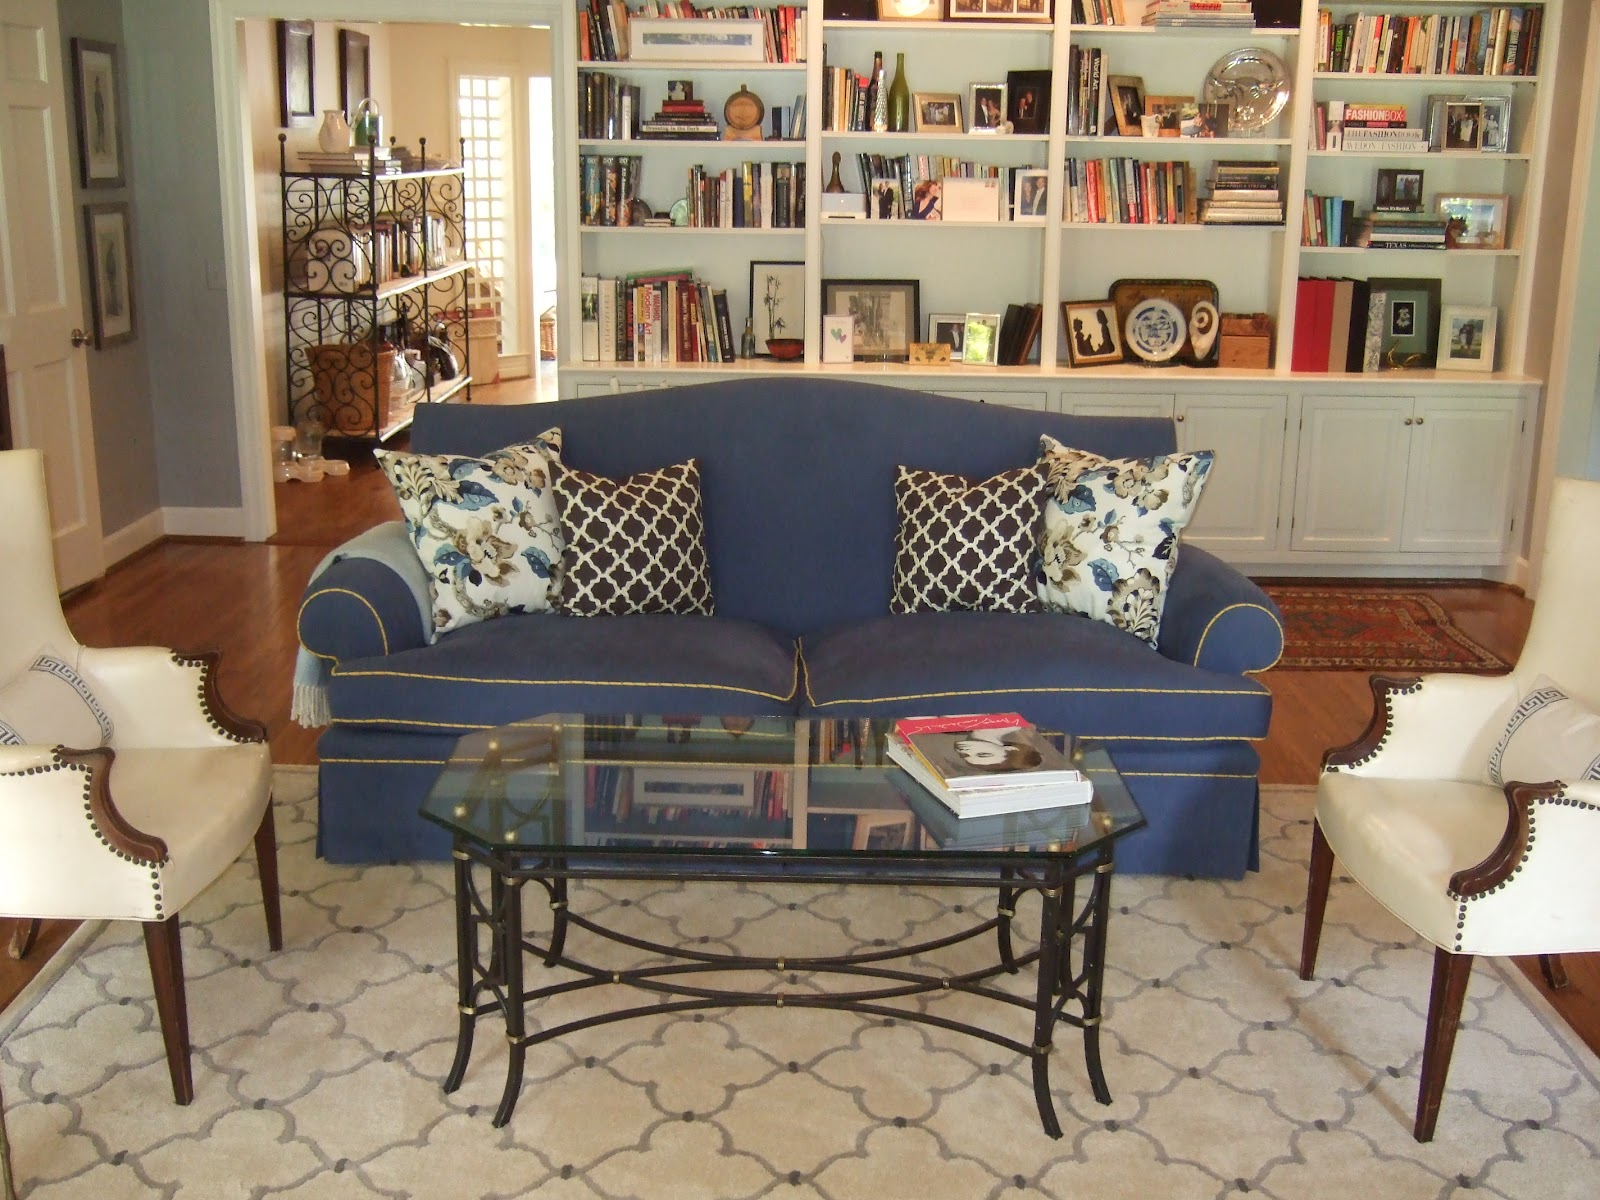 Contemporary Country Furniture Contemporary French Country Furniture inside 10 Clever Tricks of How to Makeover Craigslist Living Room Sets